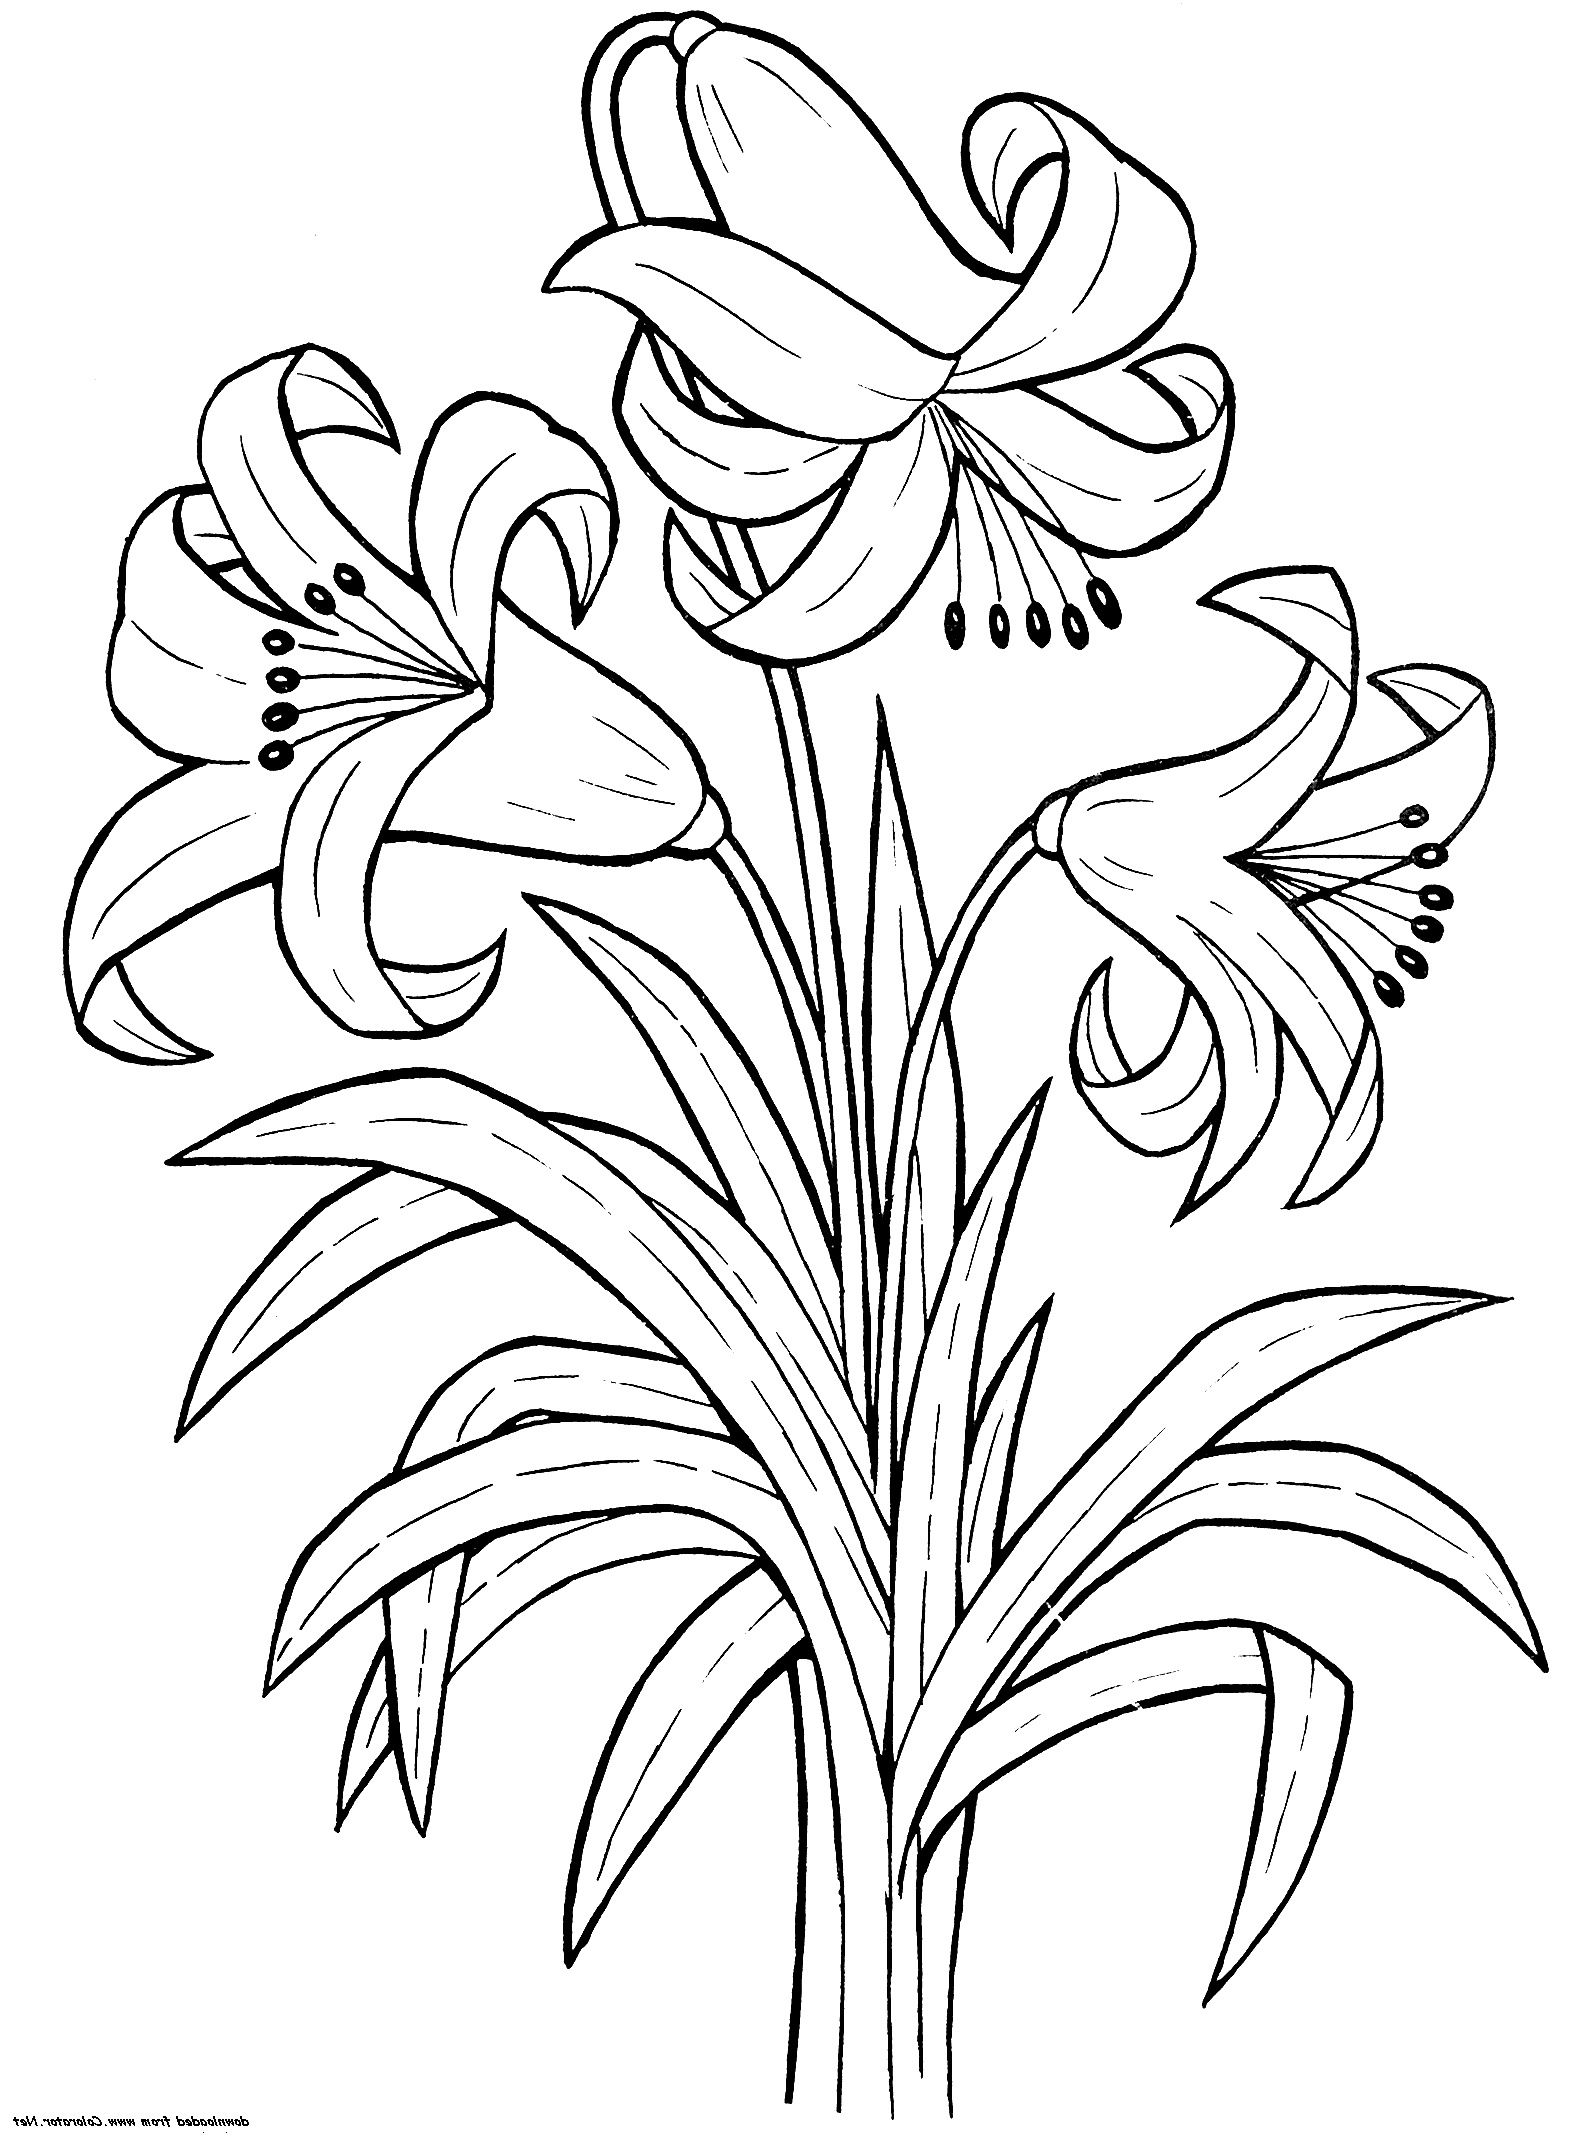 lily flower coloring pages lily flower coloring pages download and print lily flower coloring lily flower pages